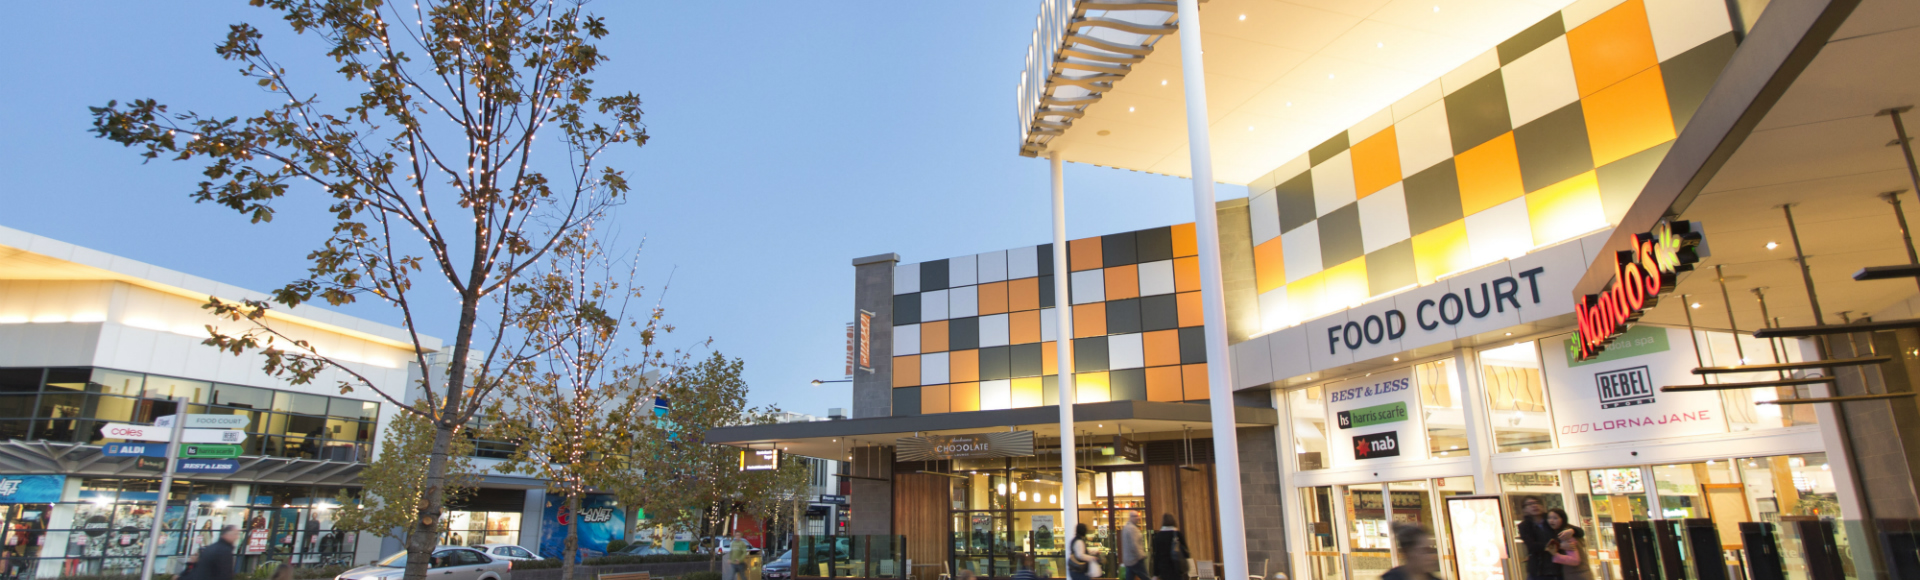 Point Cook Shopping Centre Main Entrance 1920x580px